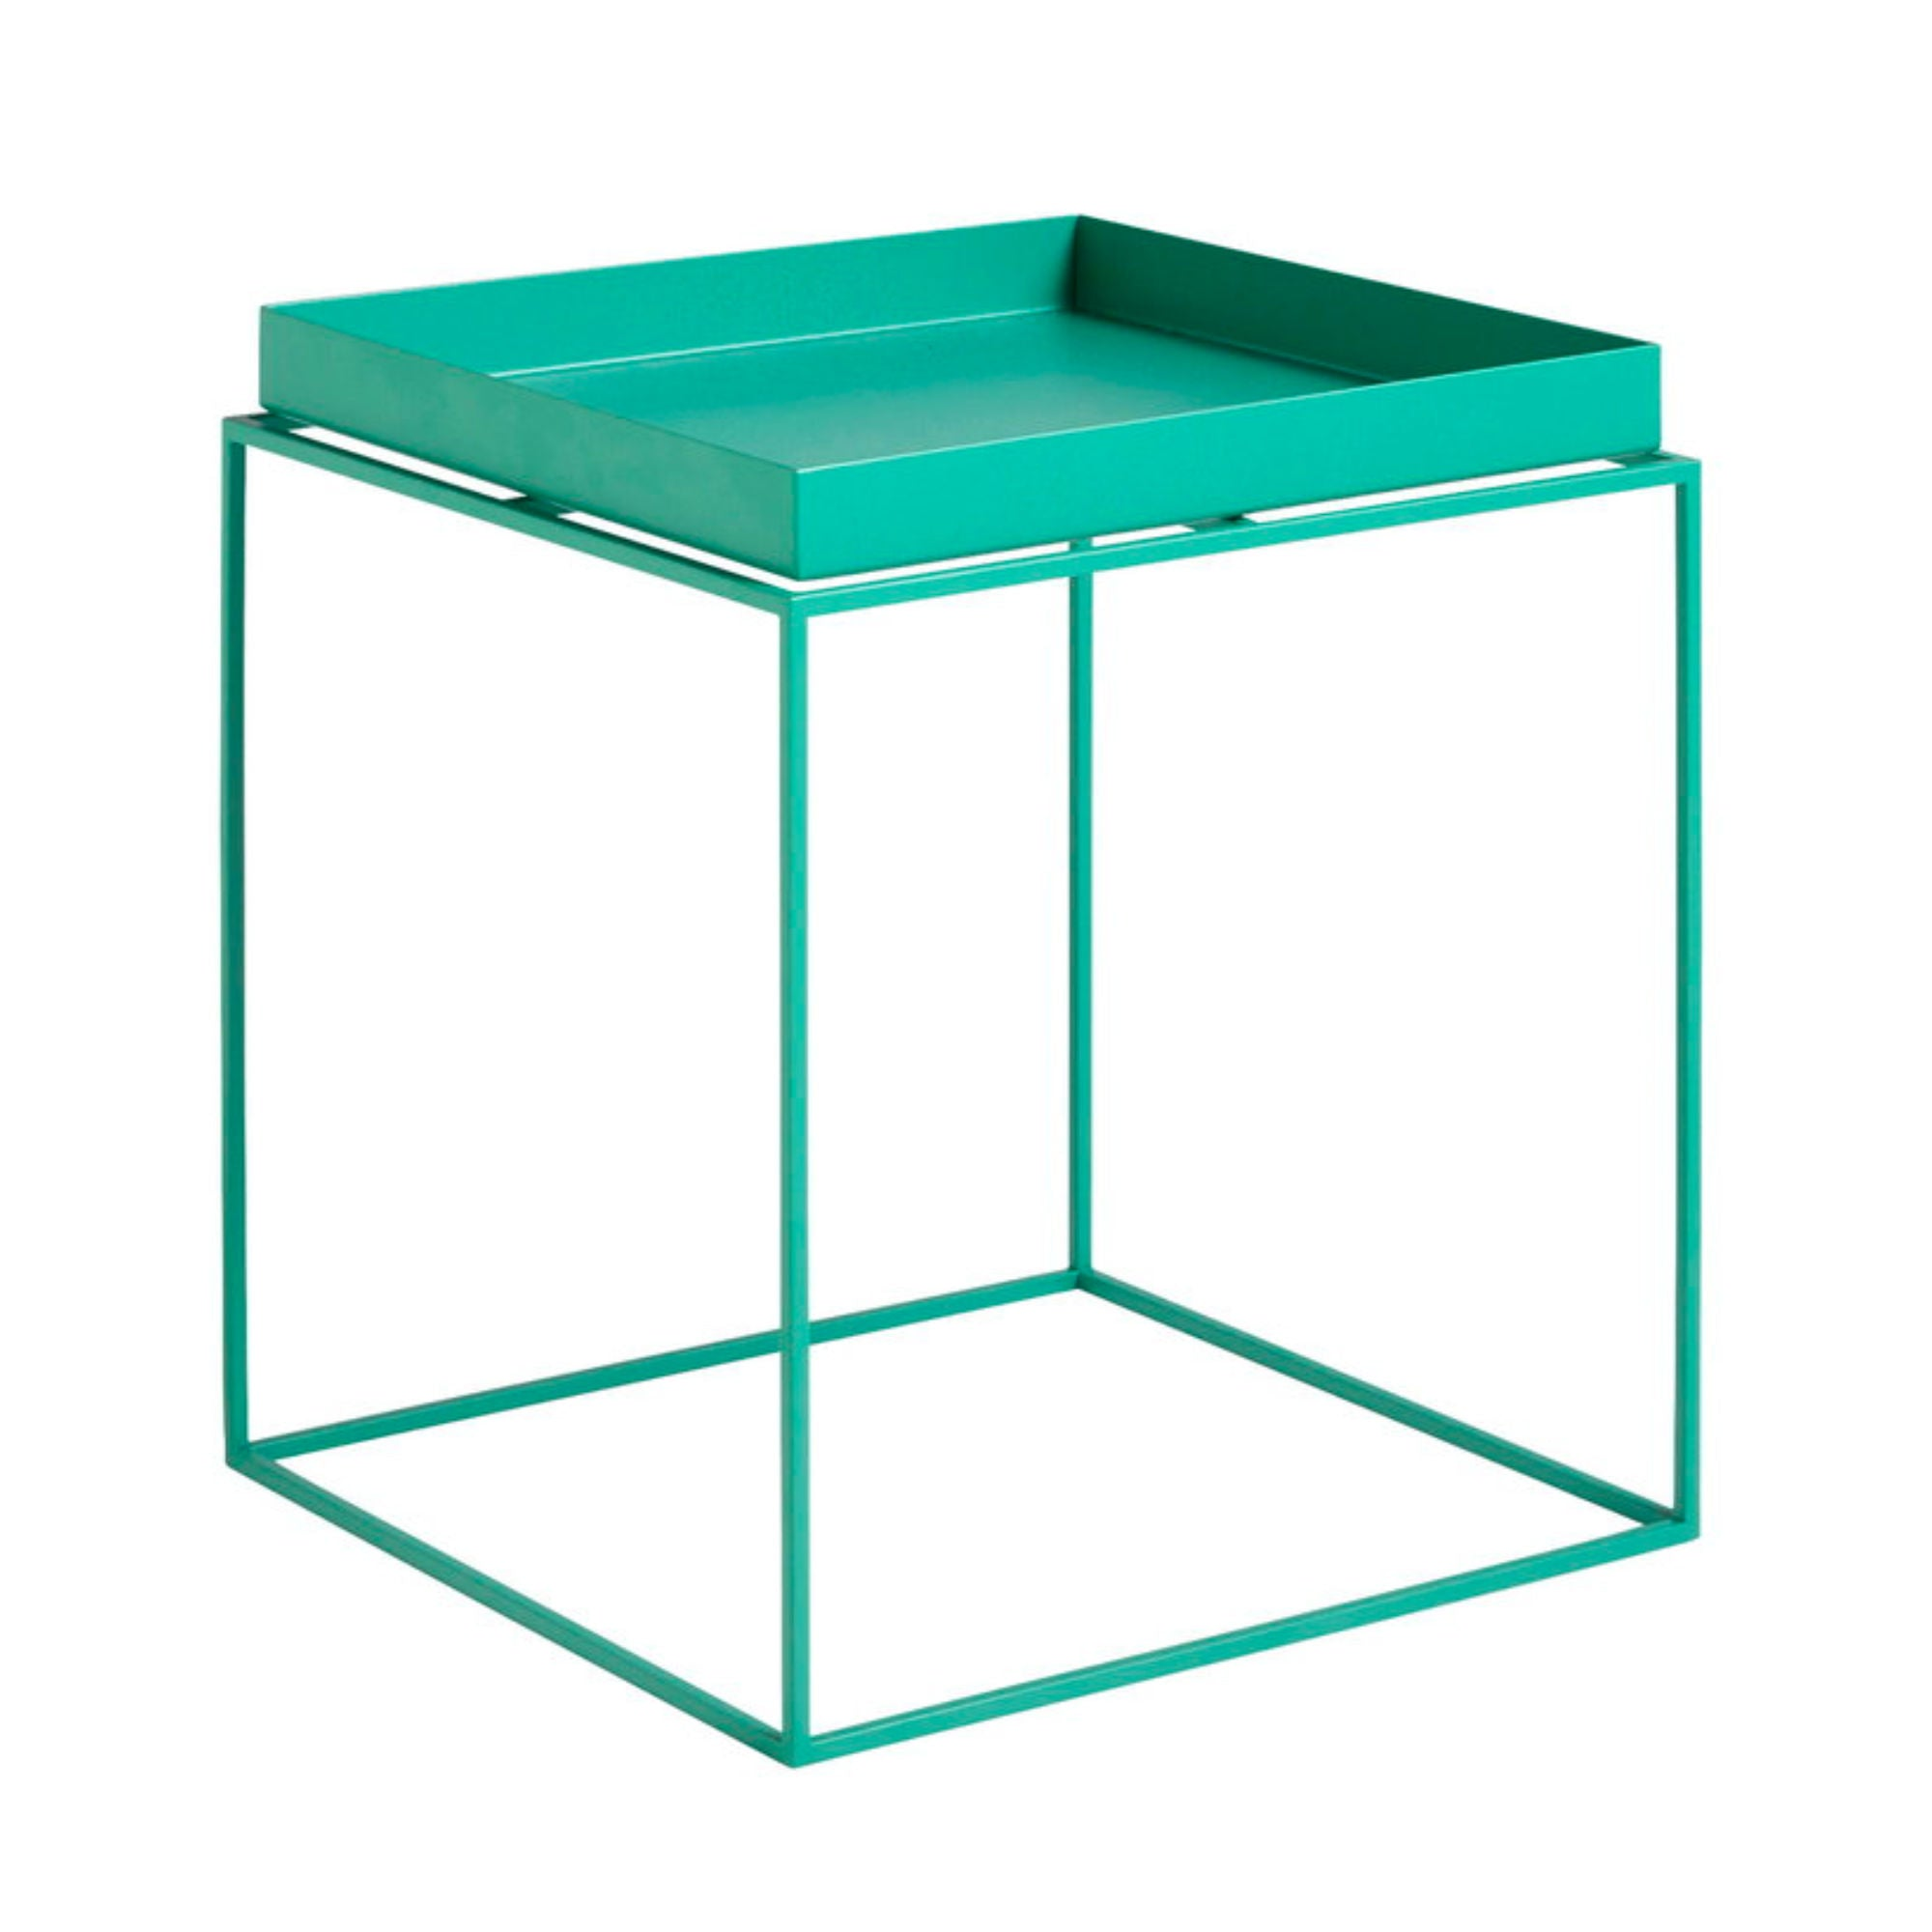 Hay Tray Table Side Table M , Peppermint Green